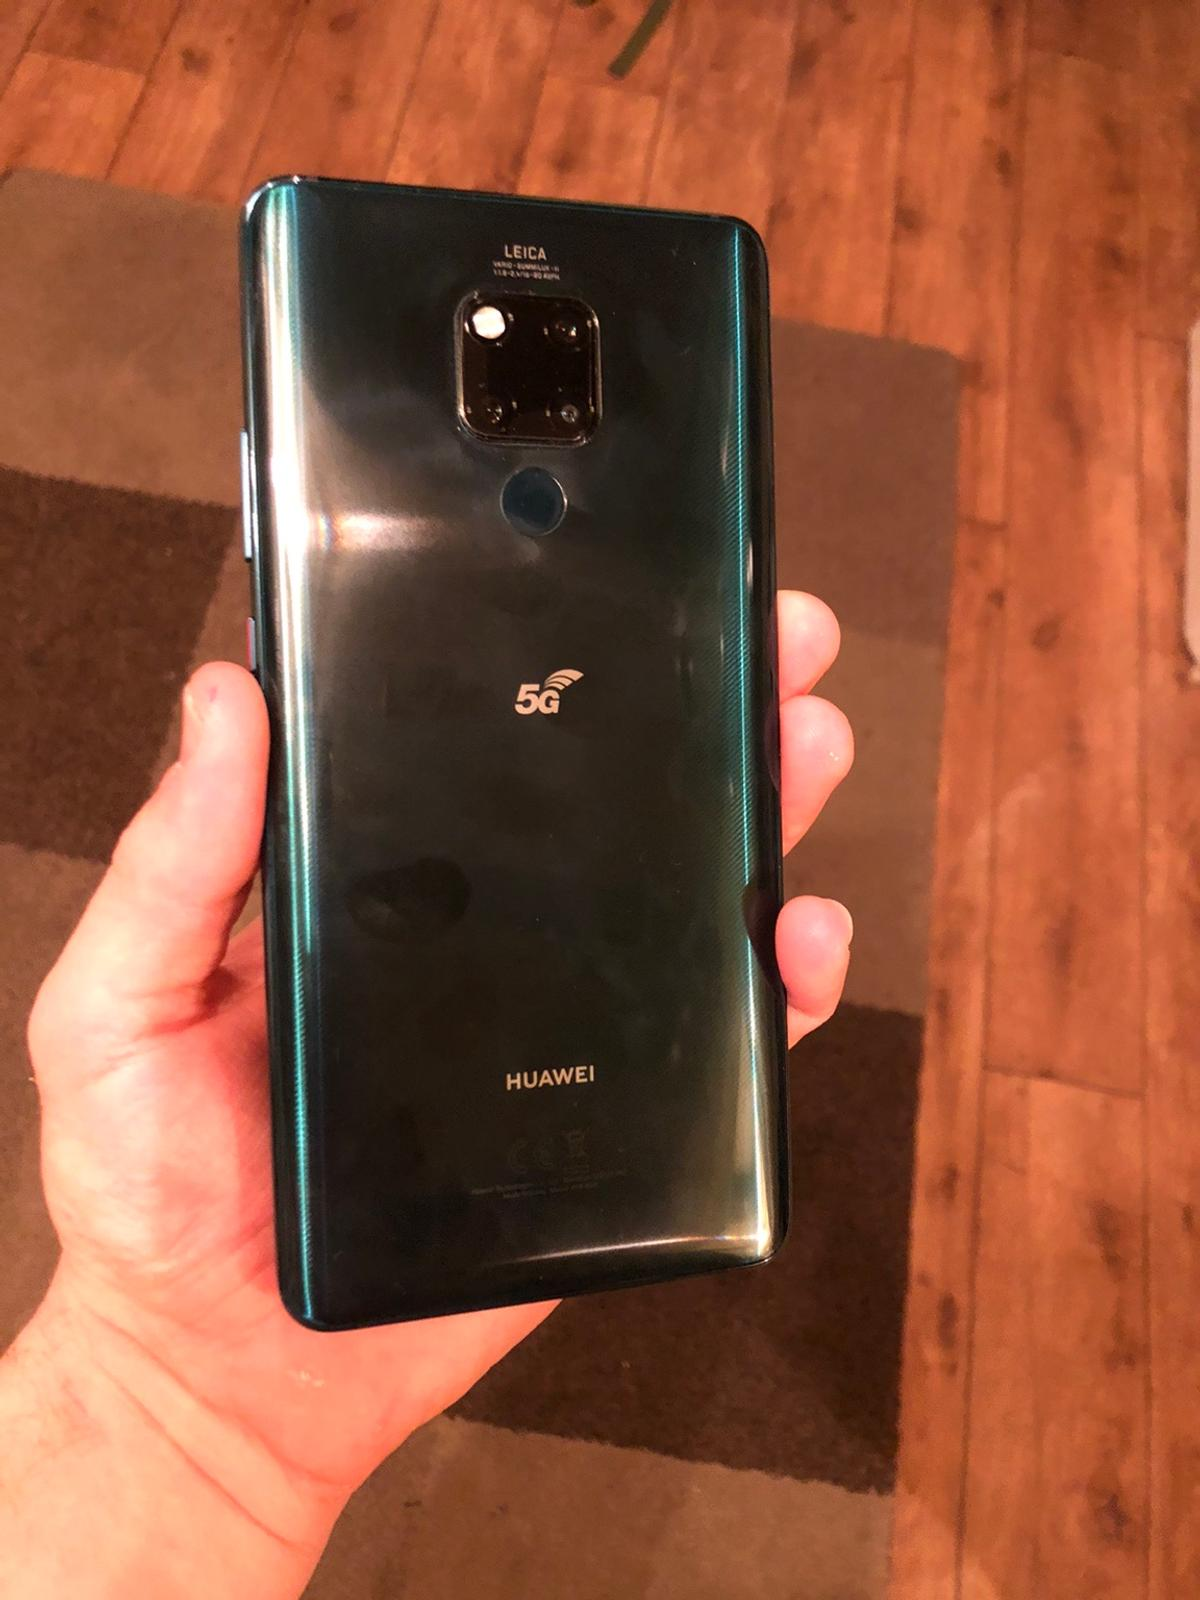 Huawei mate 20 x 5g in emerald green excellent condition with screen protector fitted comes boxed with all accessories and case.  Looking for swaps for other phones or offers Phones must be in excellent condition boxed Thanks.  Samsung oneplus google pixel